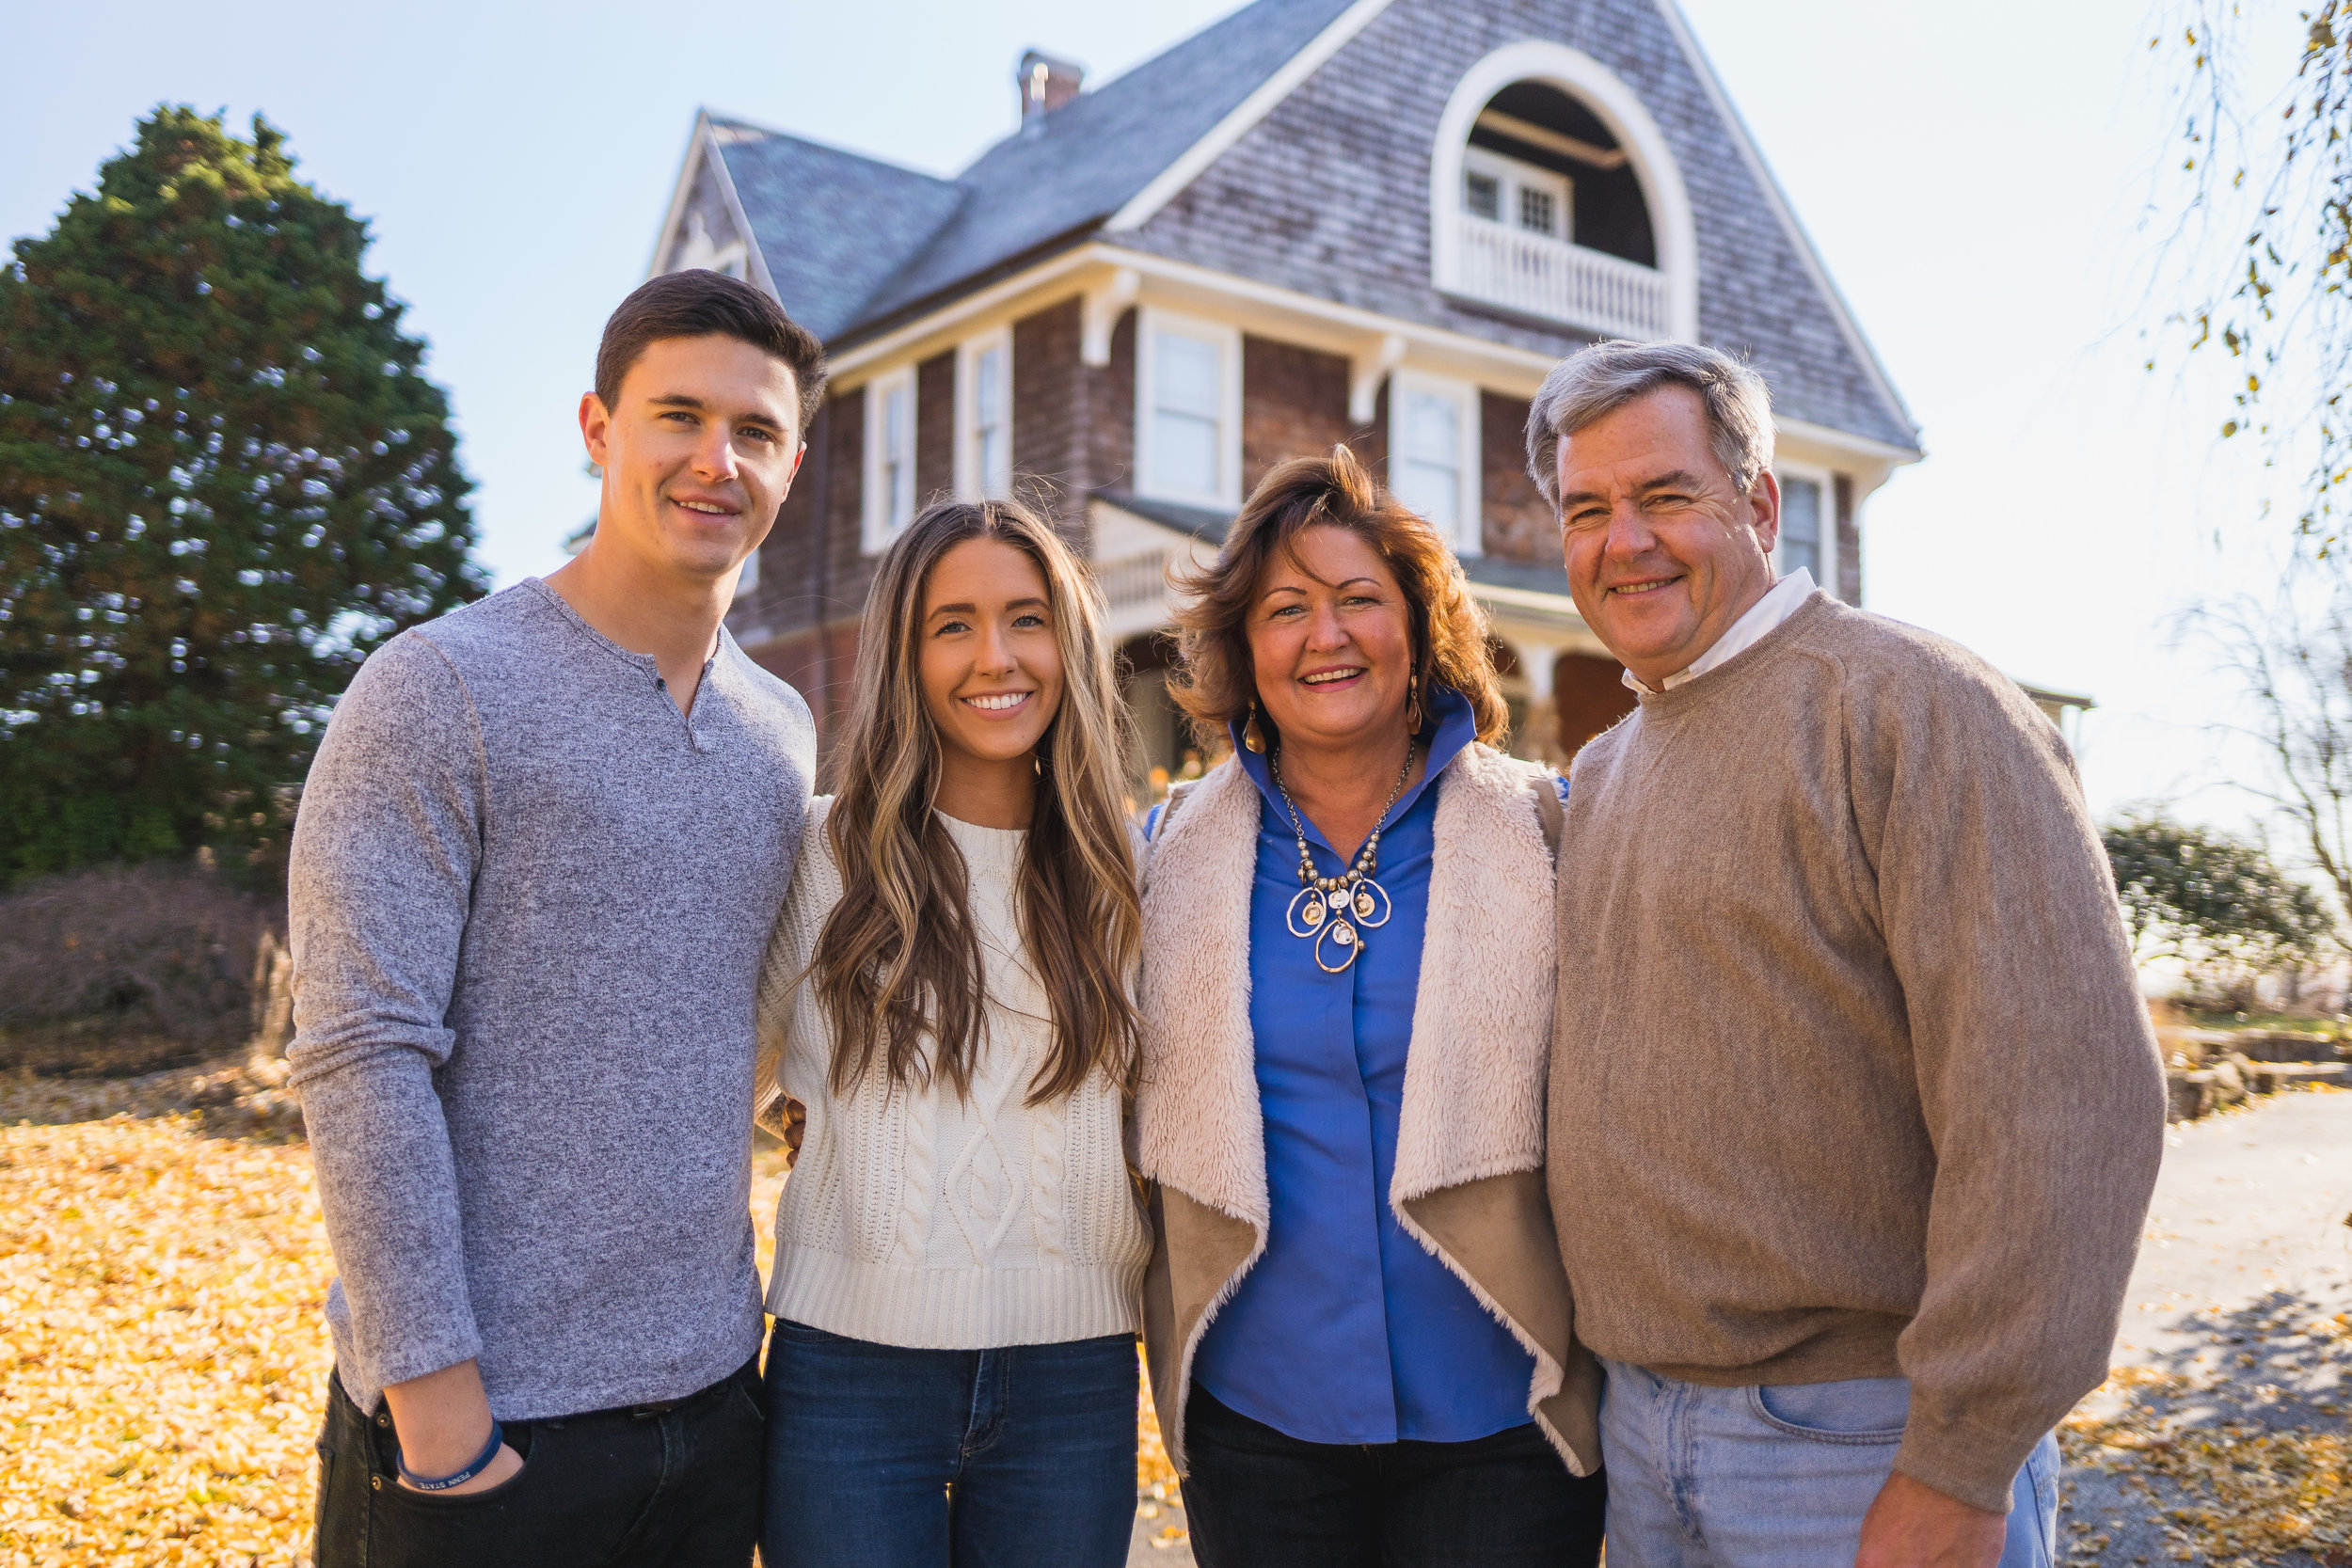 Davis Family 2018 - West Chester, PA